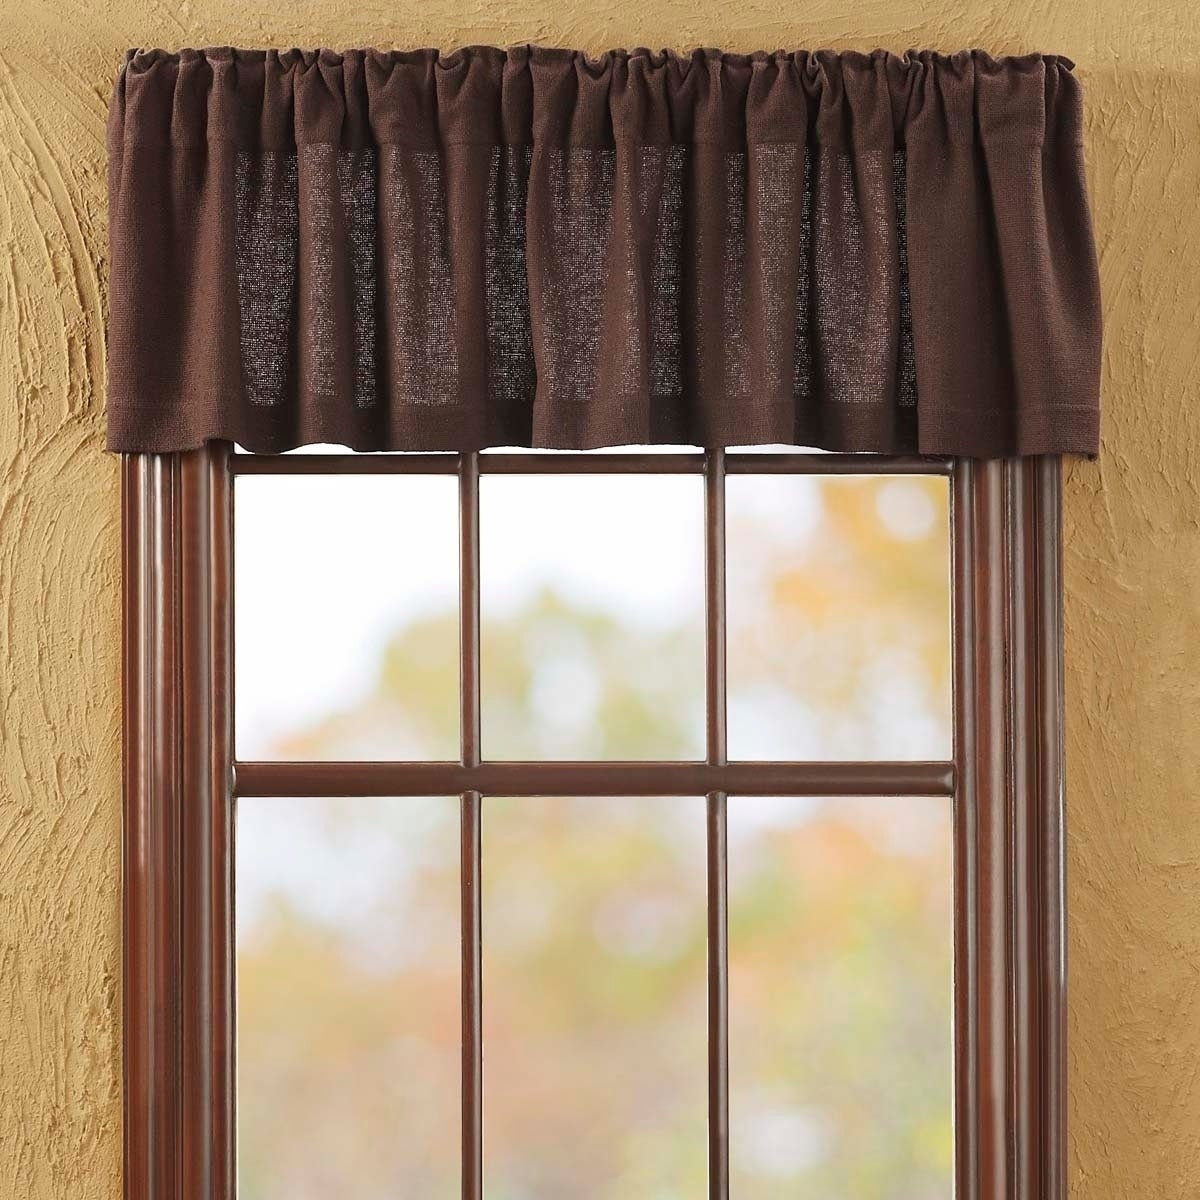 Farmhouse Kitchen Curtains VHC Cotton Burlap Valance Rod Pocket Solid Color